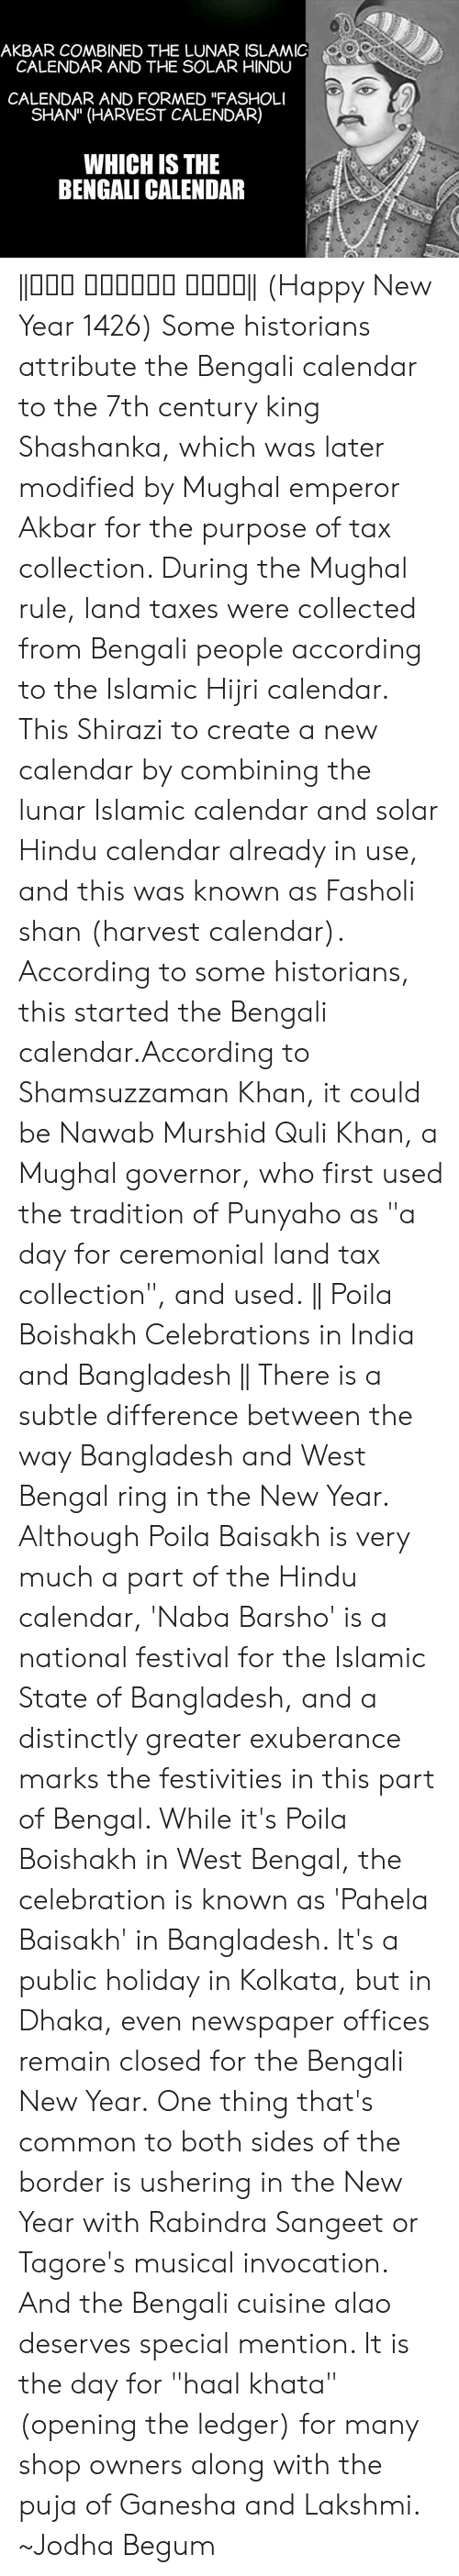 """Begum: AKBAR COMBINED THE LUNAR ISLAMIC  CALENDAR AND THE SOLAR HINDU  CALENDAR AND FORMED """"FASHOLI  SHAN"""" (HARVEST CALENDAR)  WHICH IS THE  BENGALI CALENDAR   শুভ নববর্ষ ১৪২৬     (Happy New Year 1426)  Some historians attribute the Bengali calendar to the 7th century king Shashanka, which was later modified by Mughal emperor Akbar for the purpose of tax collection. During the Mughal rule, land taxes were collected from Bengali people according to the Islamic Hijri calendar. This  Shirazi to create a new calendar by combining the lunar Islamic calendar and solar Hindu calendar already in use, and this was known as Fasholi shan (harvest calendar). According to some historians, this started the Bengali calendar.According to Shamsuzzaman Khan, it could be Nawab Murshid Quli Khan, a Mughal governor, who first used the tradition of Punyaho as """"a day for ceremonial land tax collection"""", and used.     Poila Boishakh Celebrations in India and Bangladesh    There is a subtle difference between the way Bangladesh and West Bengal ring in the New Year. Although Poila Baisakh is very much a part of the Hindu calendar, 'Naba Barsho' is a national festival for the Islamic State of Bangladesh, and a distinctly greater exuberance marks the festivities in this part of Bengal. While it's Poila Boishakh in West Bengal, the celebration is known as 'Pahela Baisakh' in Bangladesh. It's a public holiday in Kolkata, but in Dhaka, even newspaper offices remain closed for the Bengali New Year.  One thing that's common to both sides of the border is ushering in the New Year with Rabindra Sangeet or Tagore's musical invocation. And the Bengali cuisine alao deserves special mention. It is the day for """"haal khata"""" (opening the ledger) for many shop owners along with the puja of Ganesha and Lakshmi.   ~Jodha Begum"""